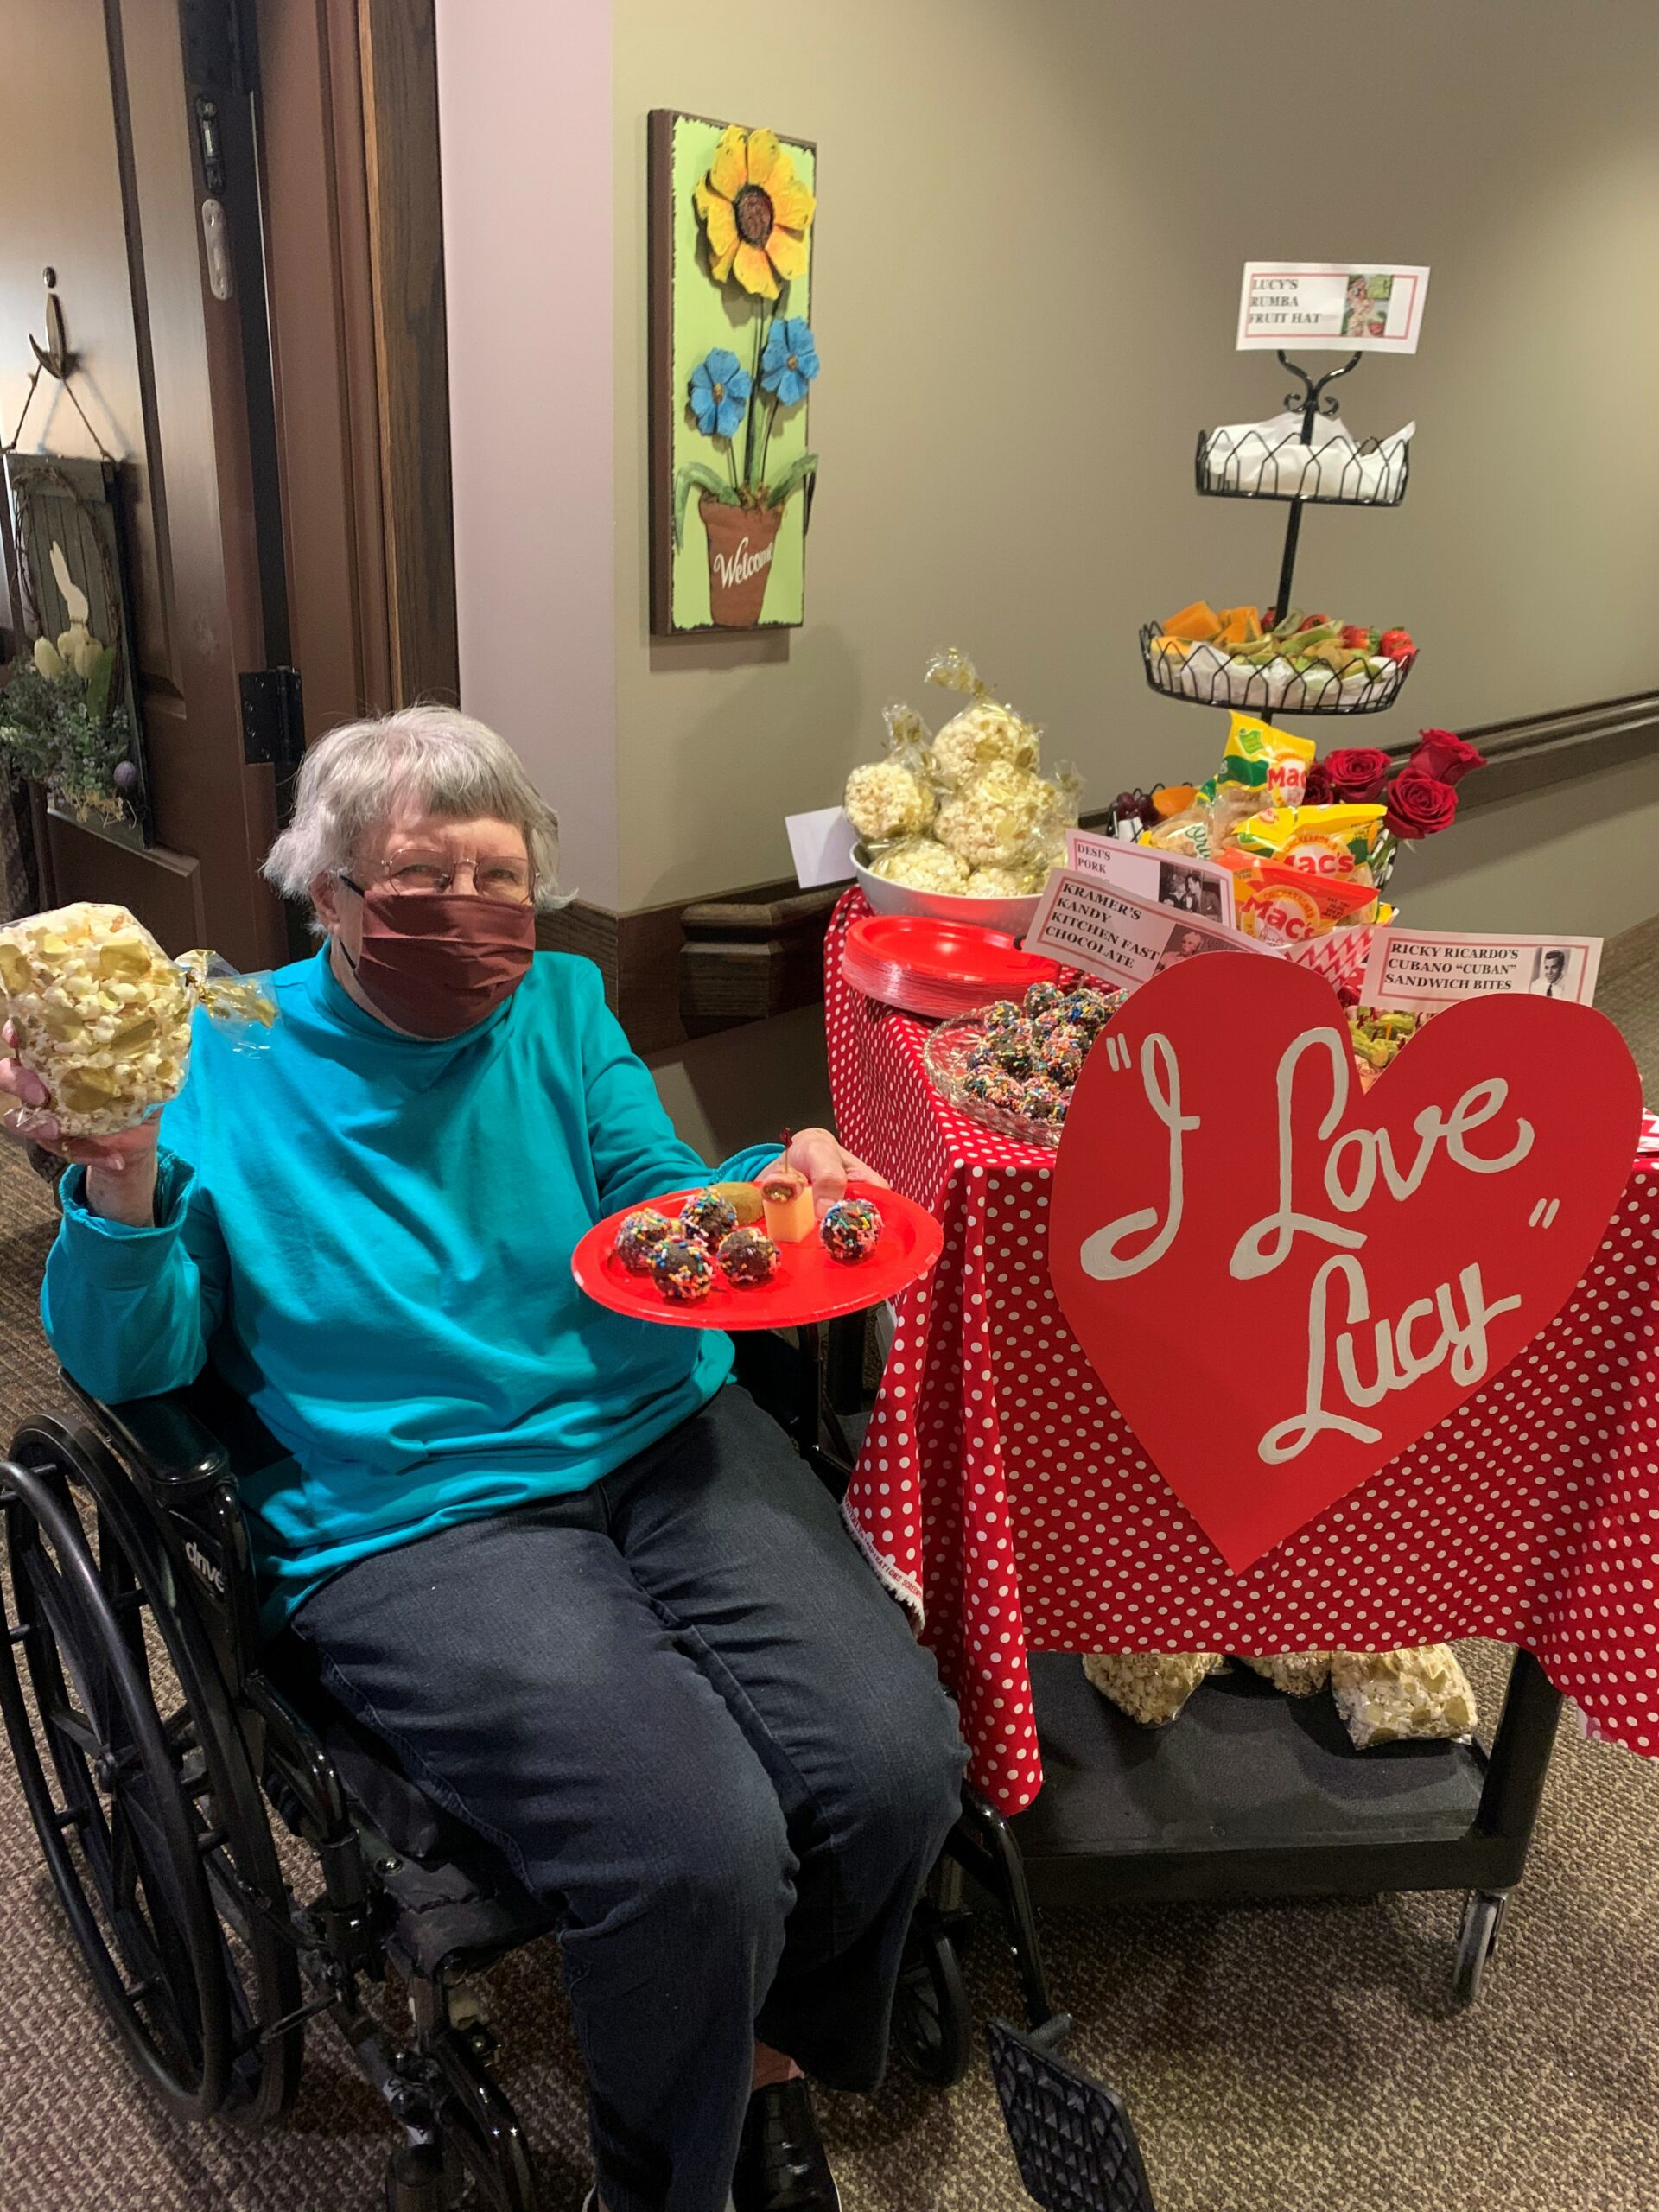 I Love Lucy Day Cart- Residents were surprised when a cart of treats and drinks showed up at their door on I Love Lucy Day! They had I Love Loosey Cocktails, Ricky's Cuba Libre's and Cuban Sandwiches, Kramer's Kandy Chocolates, Lucy's Rumba Fruit Hat and More!